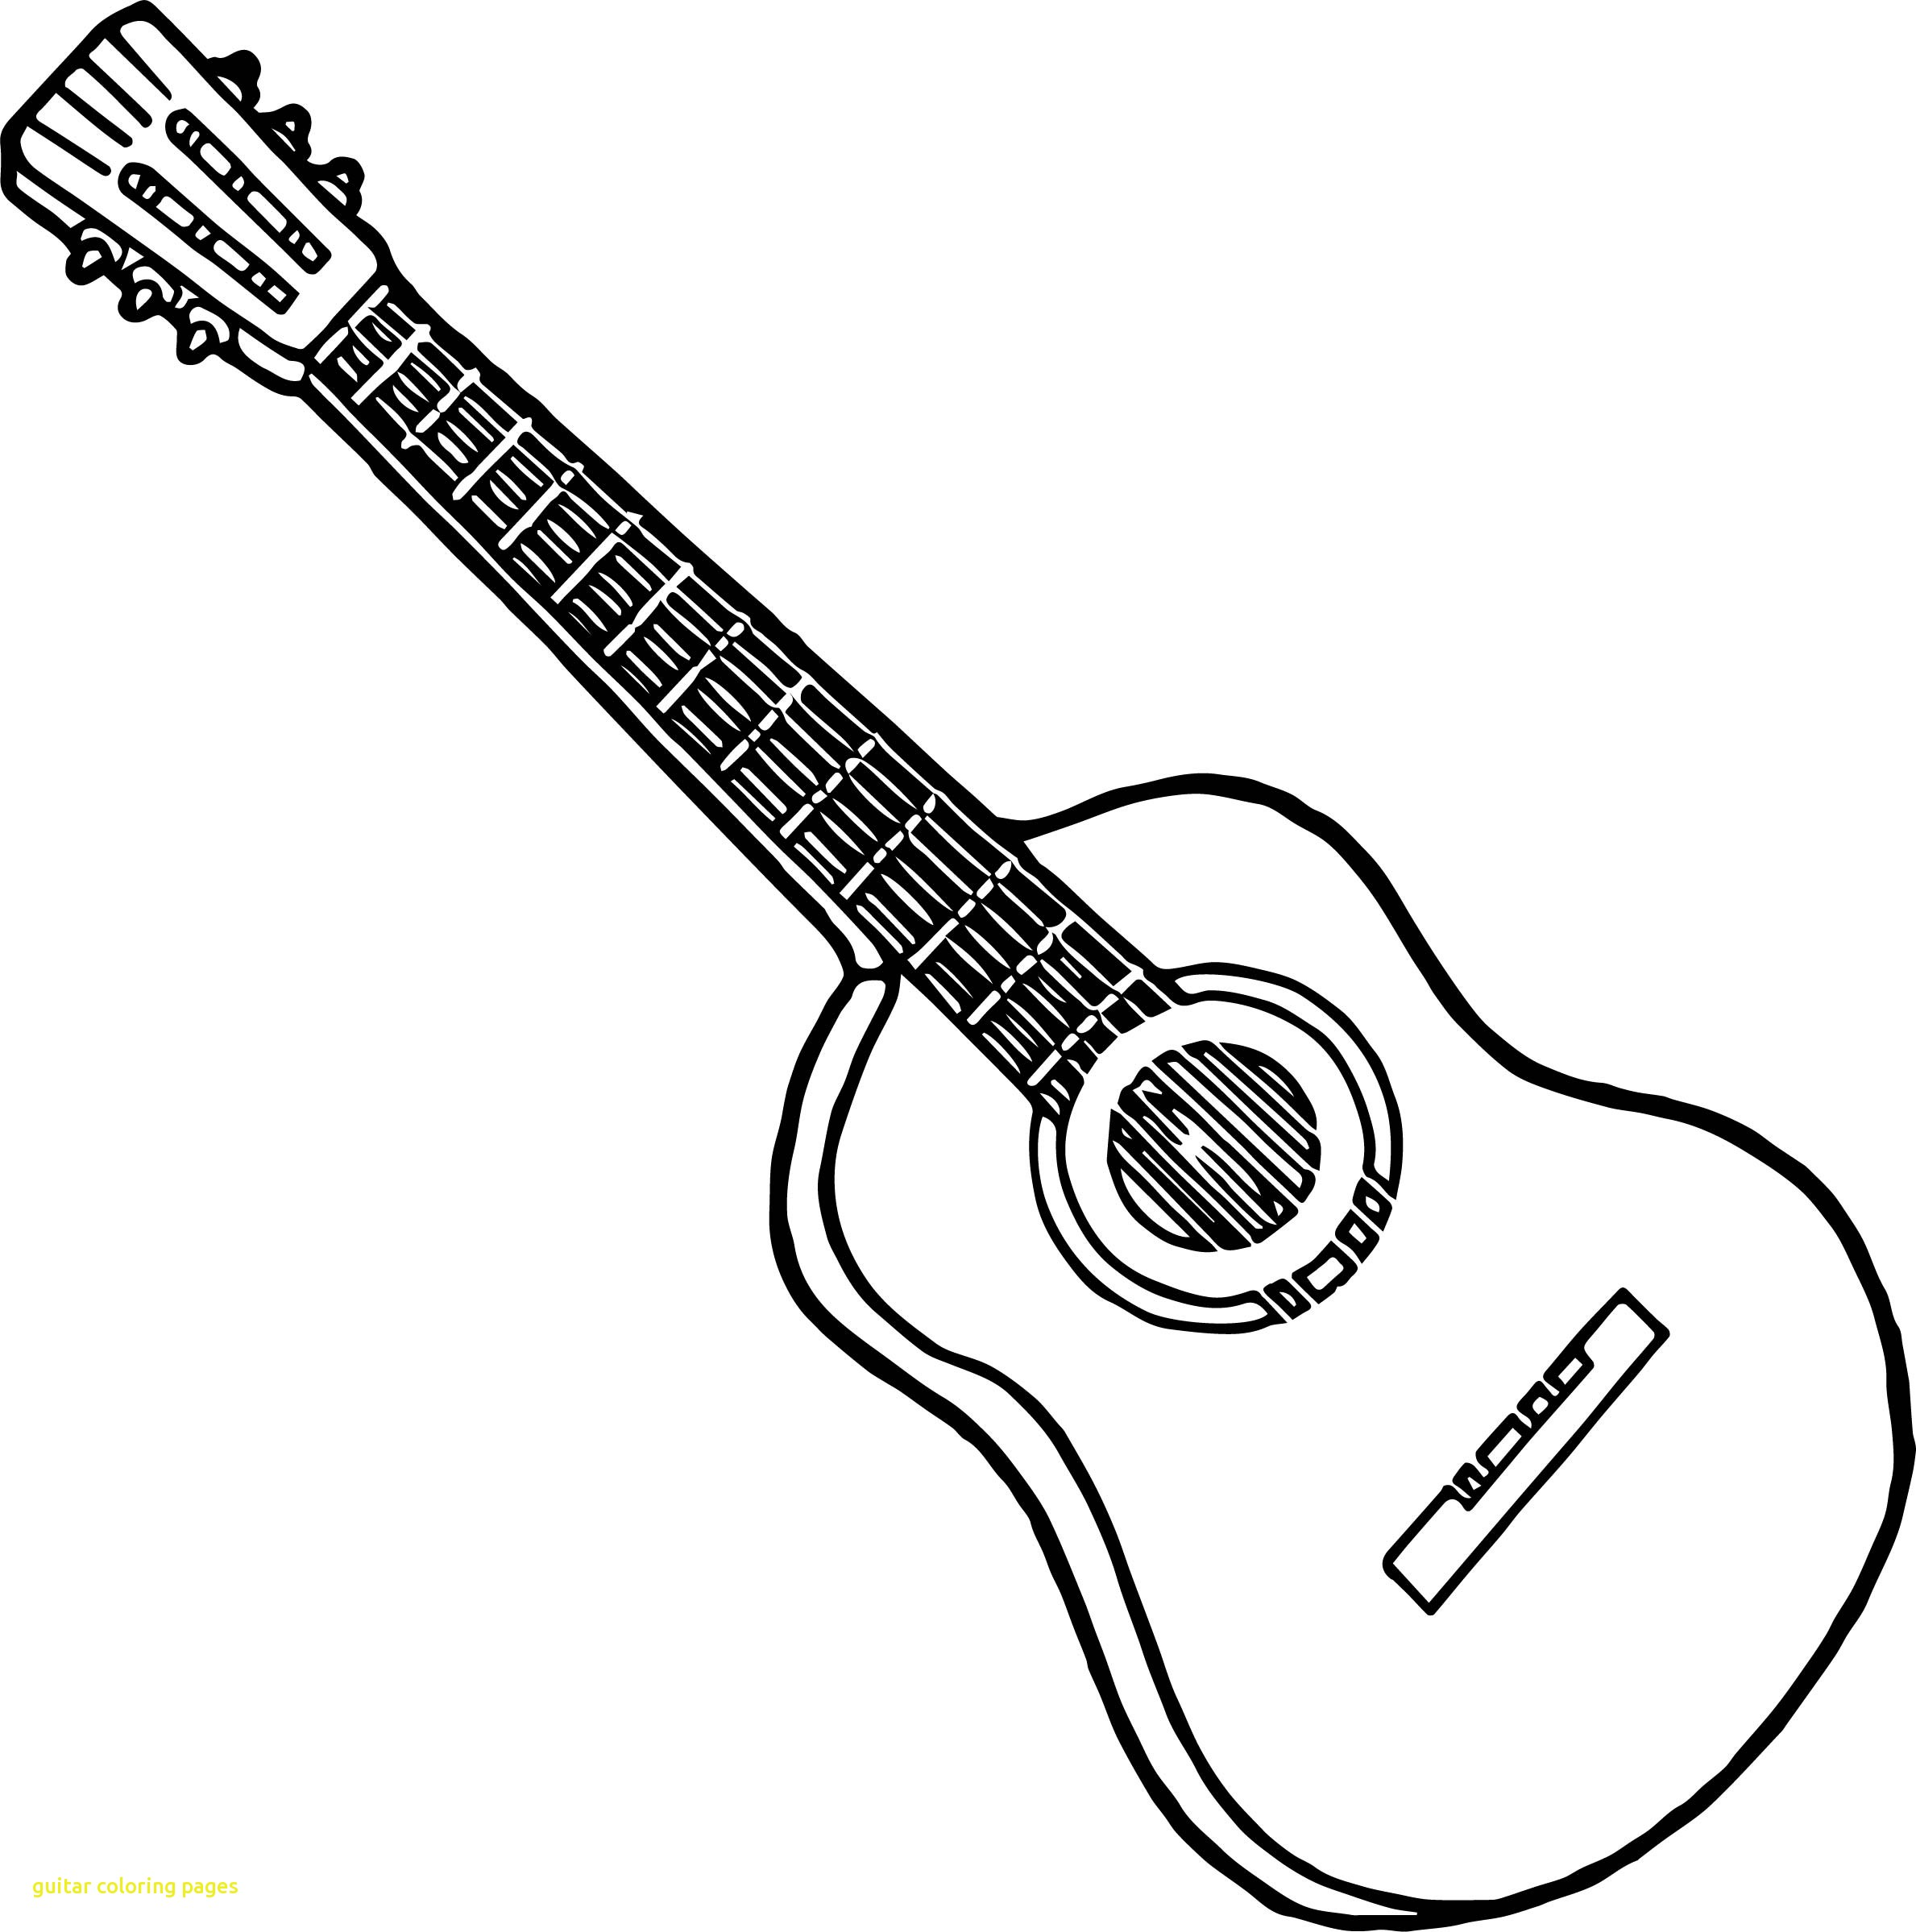 2378x2398 Survival Guitar Colouring Pages Coloring With For Kids